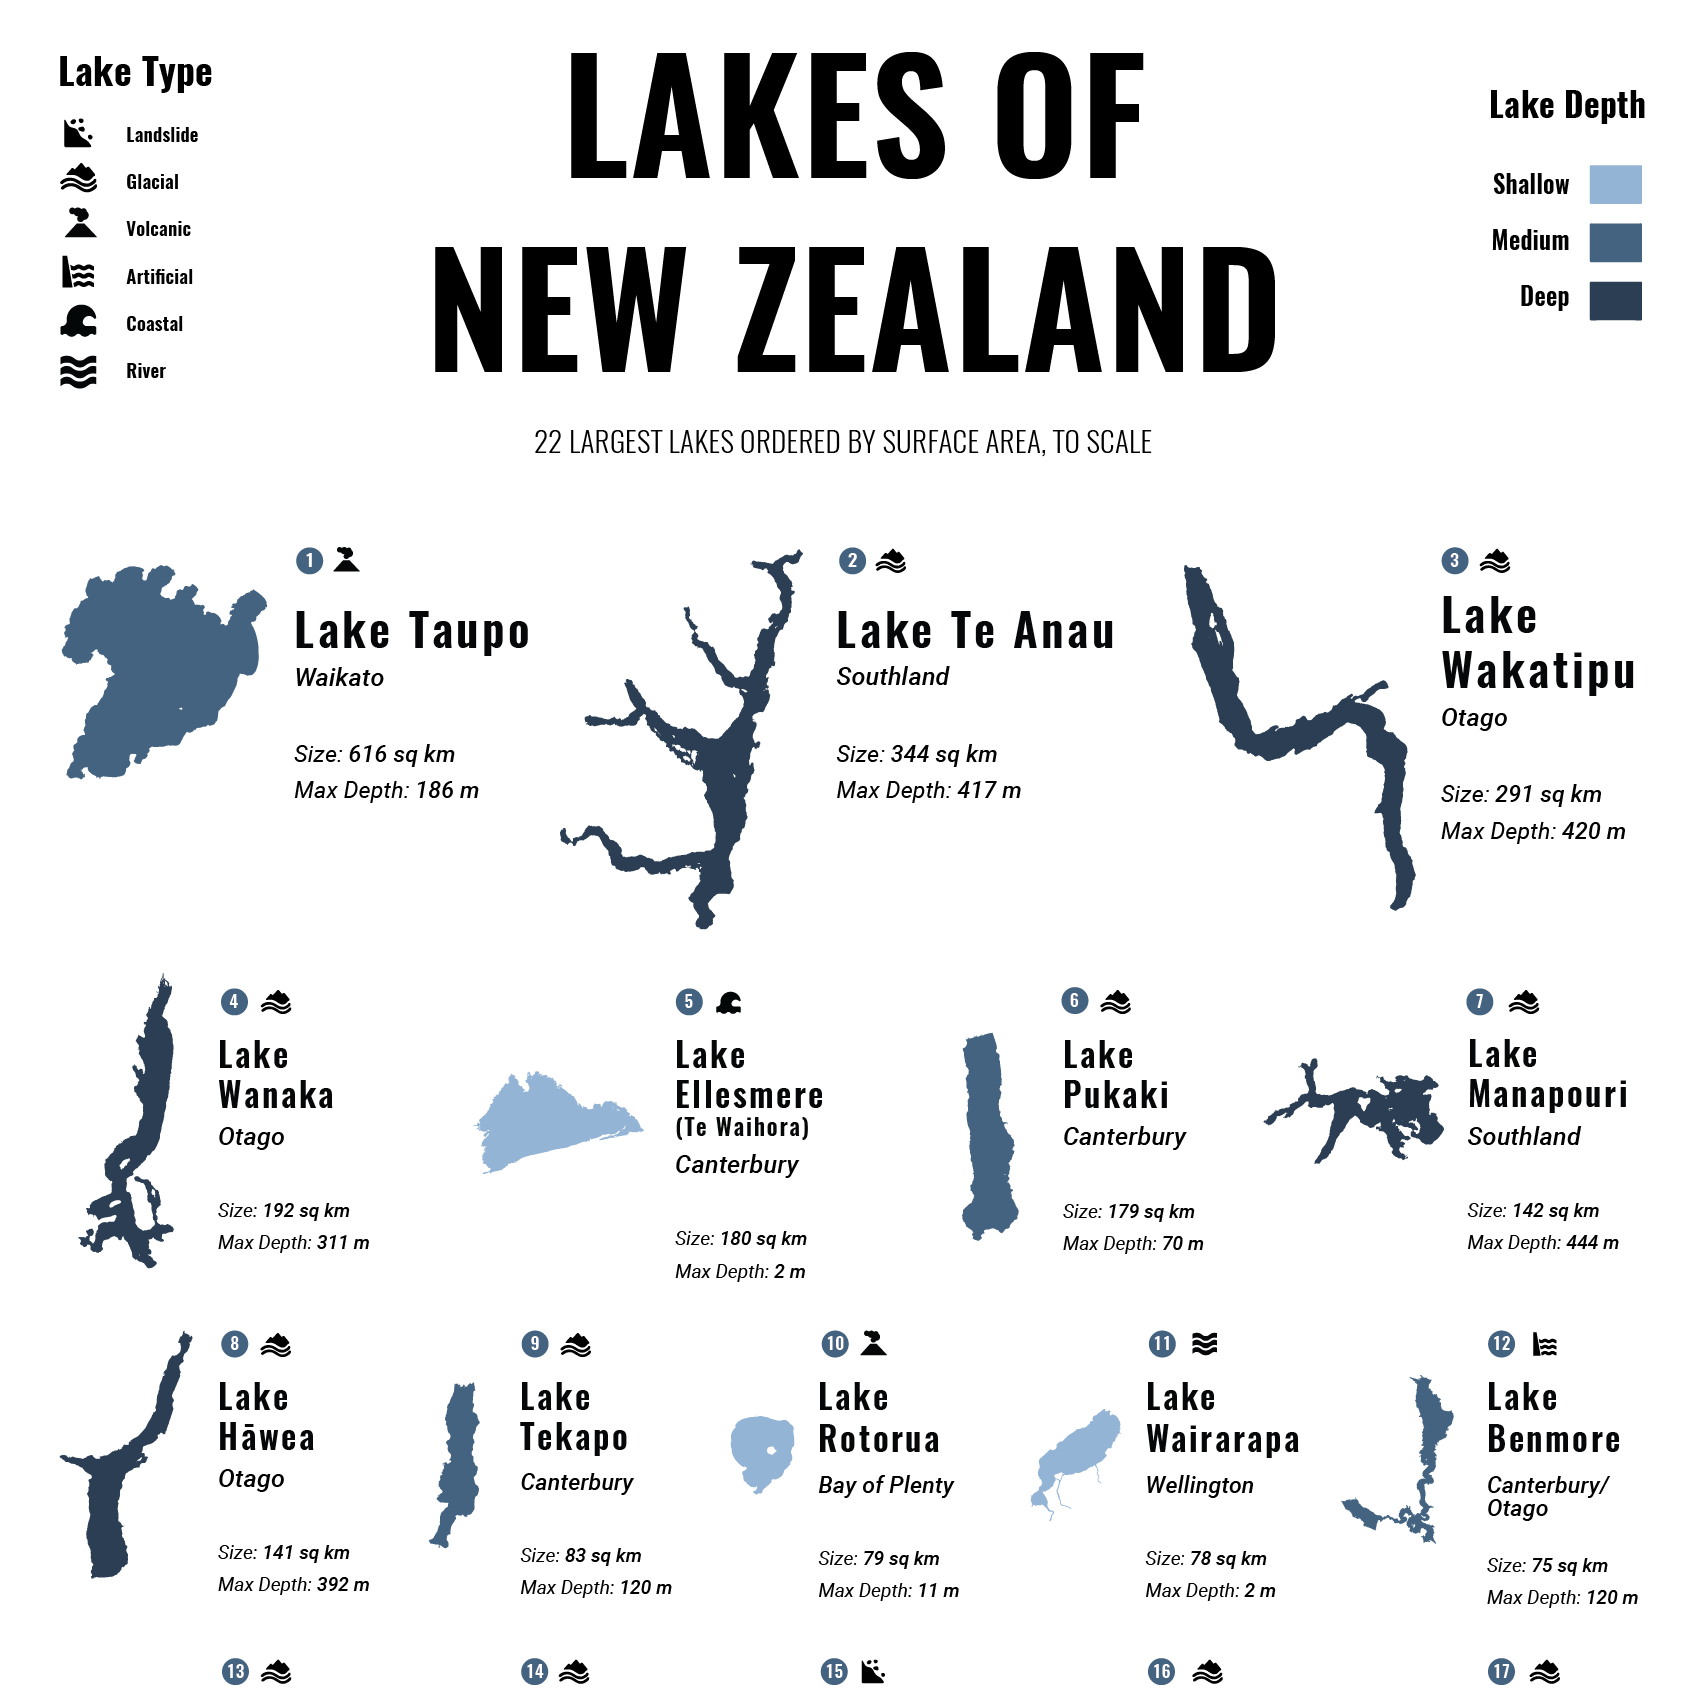 Lakes of New Zealand